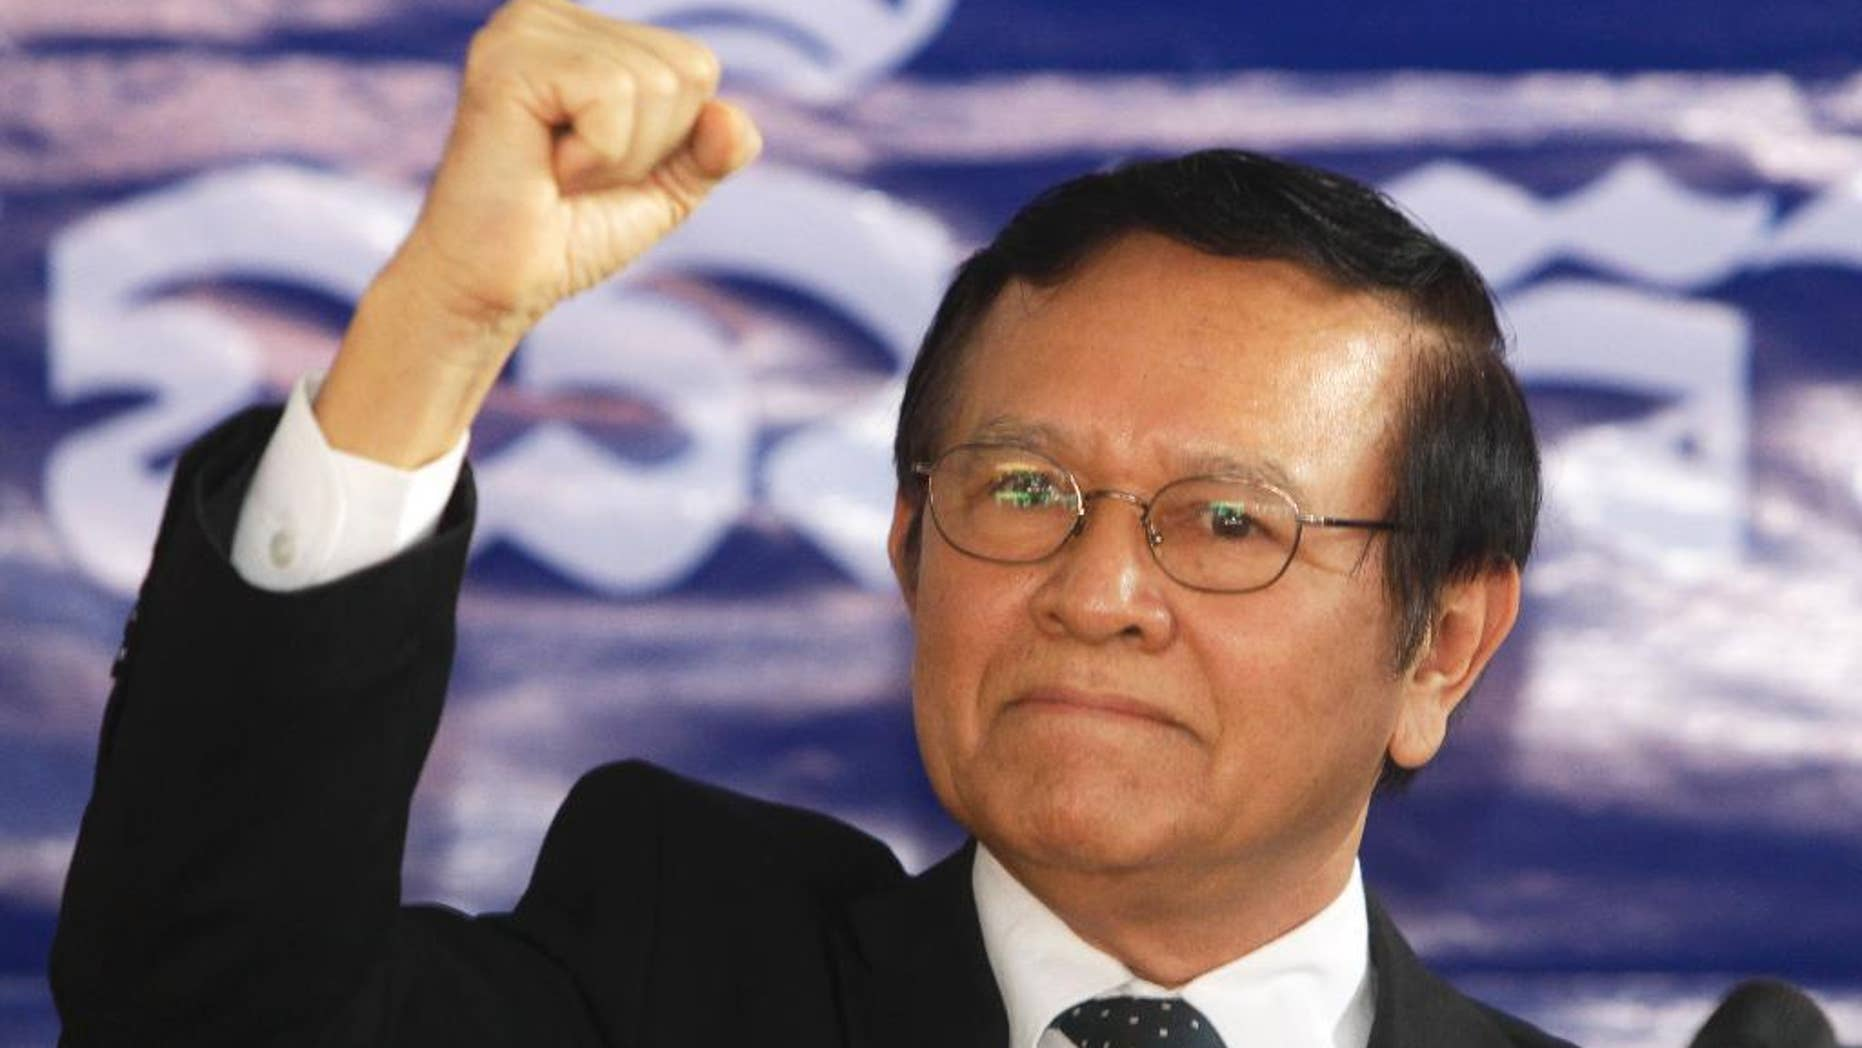 FILE - In This Friday, Sept. 9, 2016, file photo, opposition Cambodia National Rescue Party Deputy President Kem Sokha gestures during a speech at the party headquarters in Phnom Penh, Cambodia. Cambodia's King Norodom Sihamoni's pardon Friday of Kem Sokha allows him to avoid five months in prison for failing to answer a summons in a case involving his alleged mistress. (AP Photo/Heng Sinith, File)